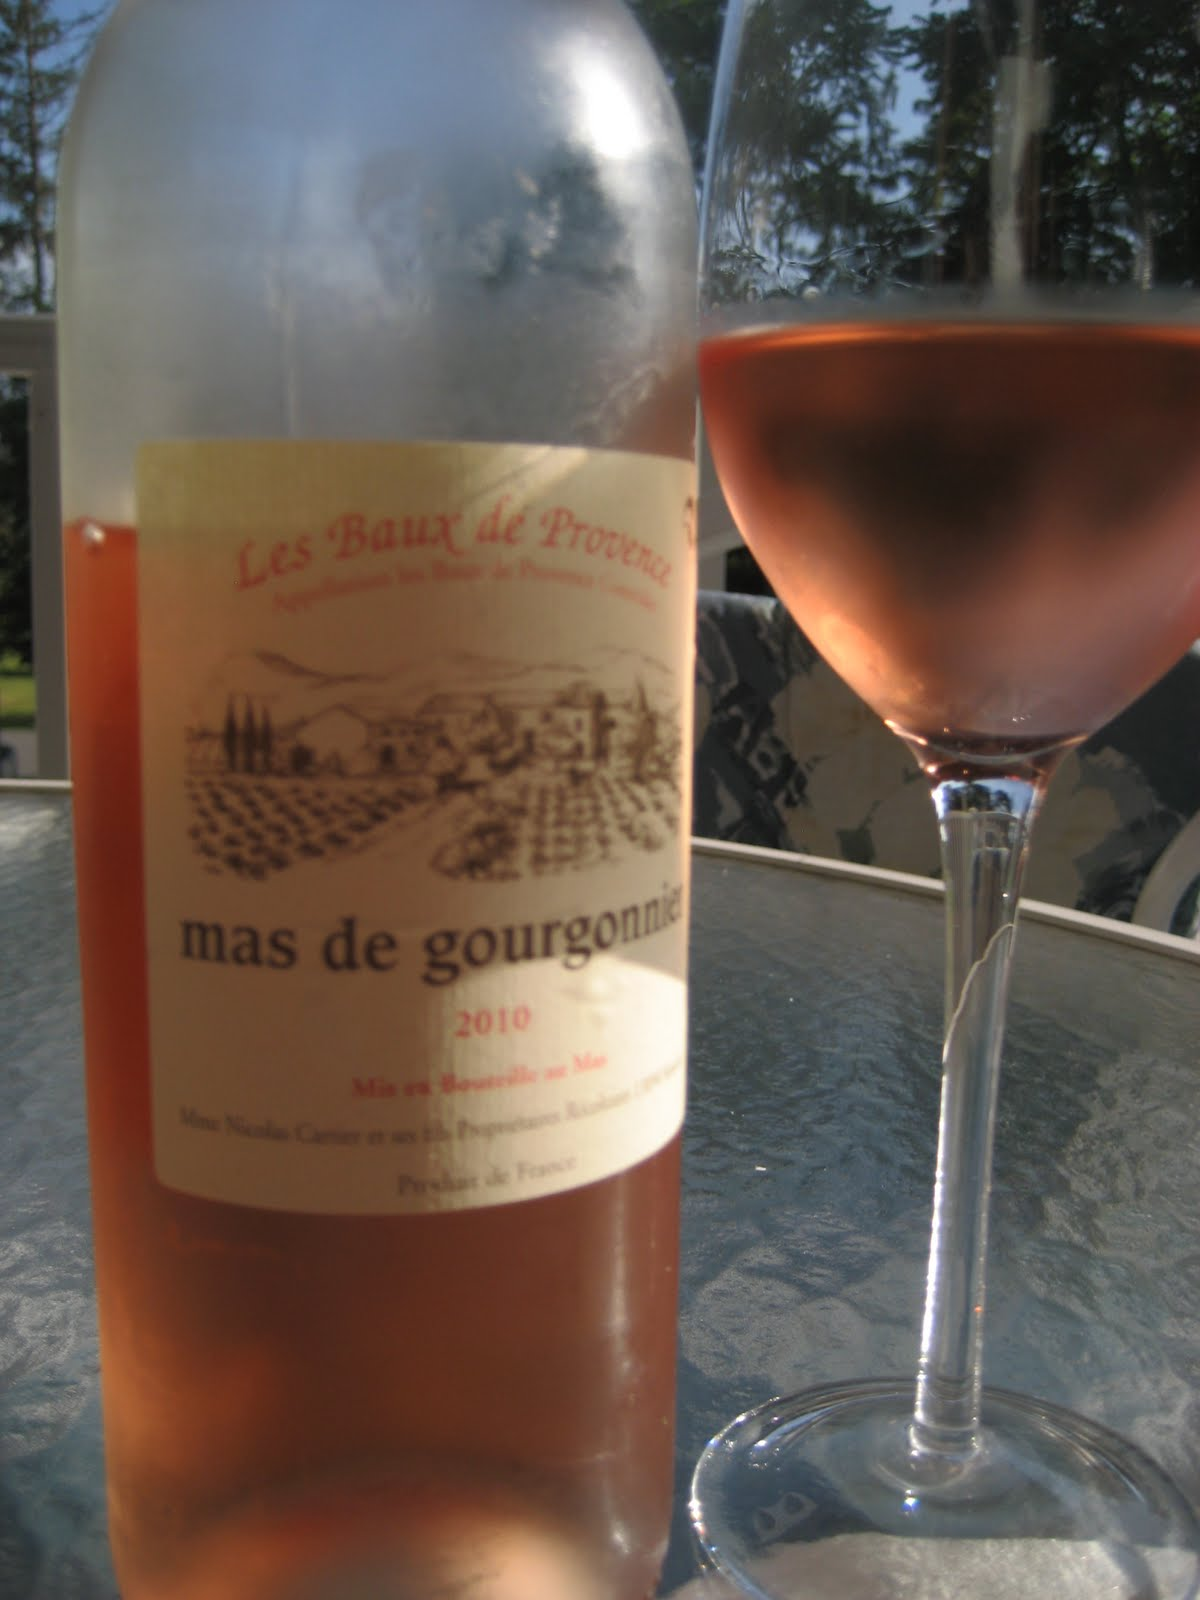 eb683b12eb1 Hudson Valley Wine Goddess  In Search of Rosé - Mas de Gourgonnier ...